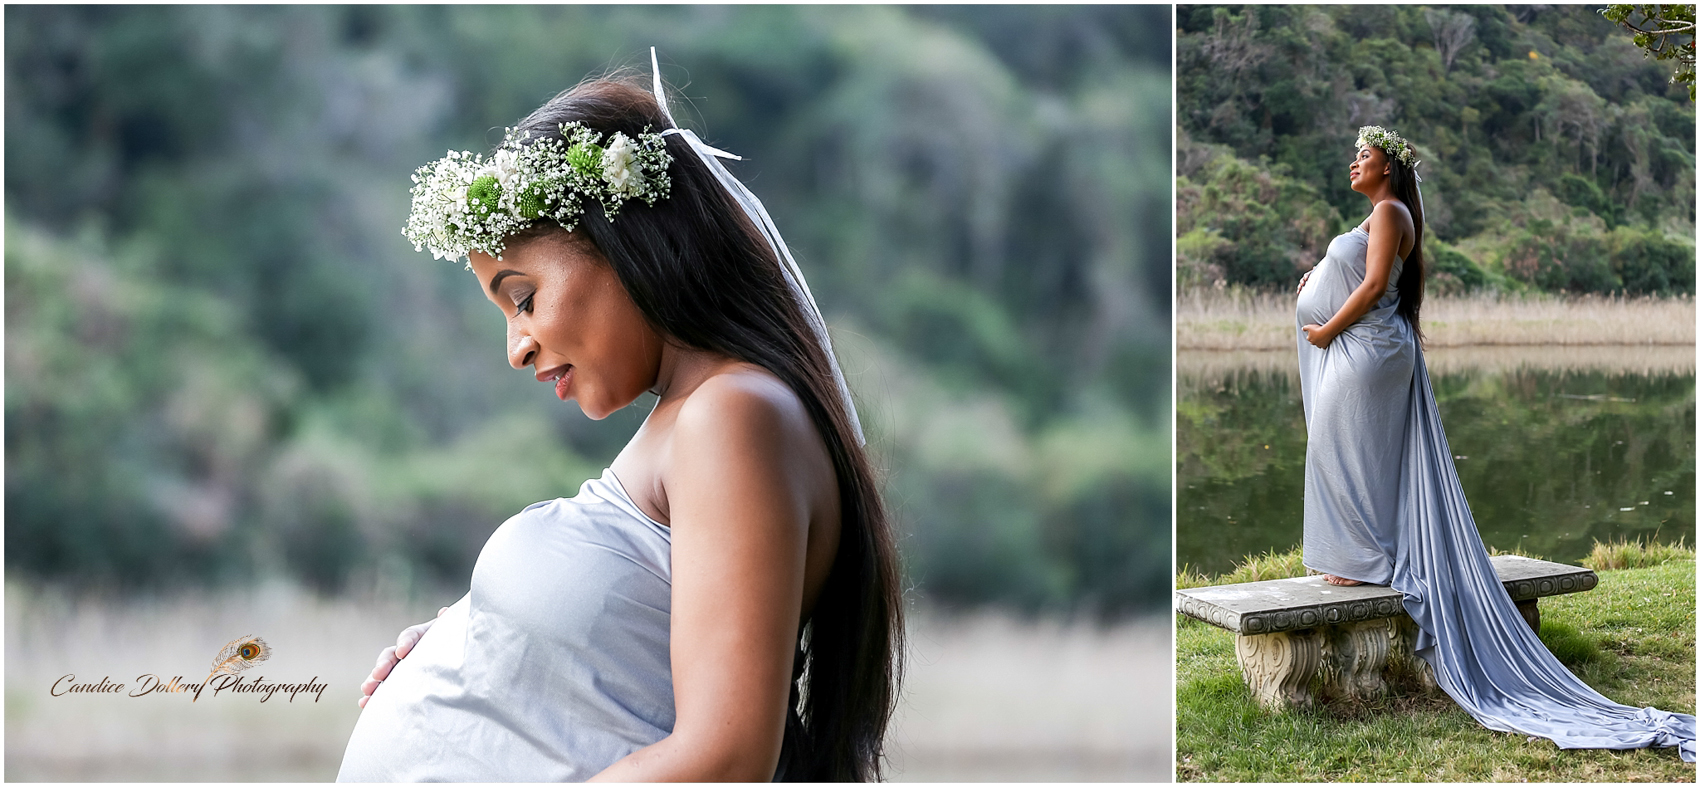 Nthabie & Lawrence - Candice Dollery_1784